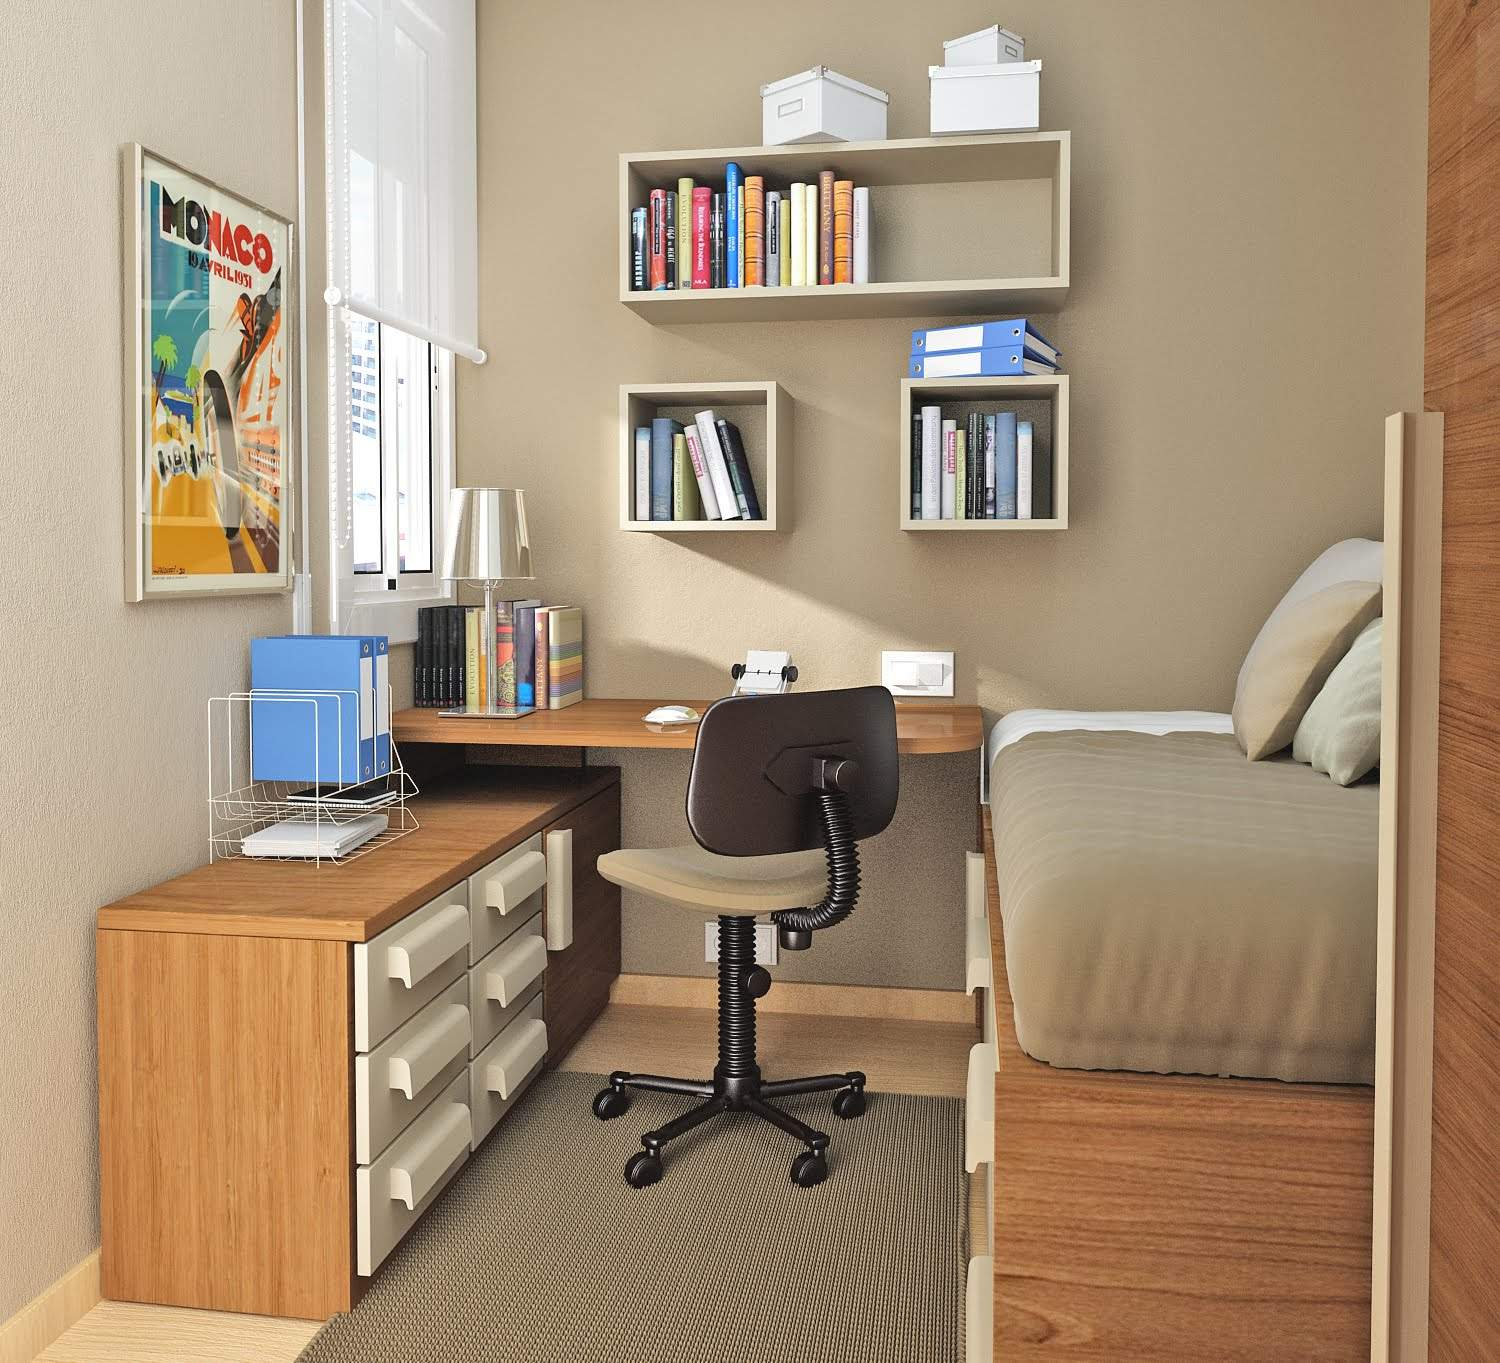 Storage space saves clutter